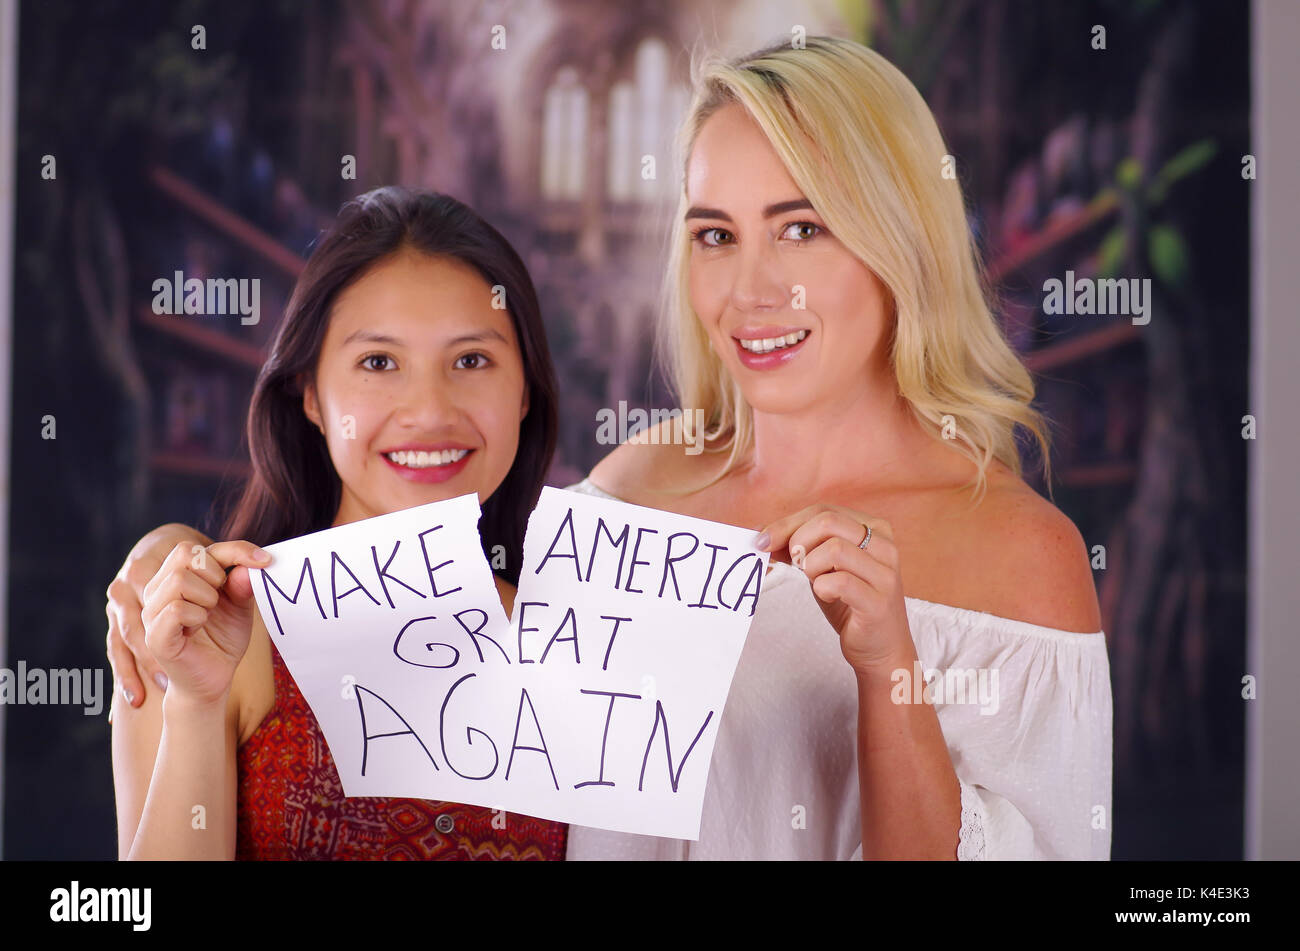 Two young women blonde and latin girl smiling and breaking racism idiosyncrasy from a american person and foreign people, destroying a paper that is w - Stock Image